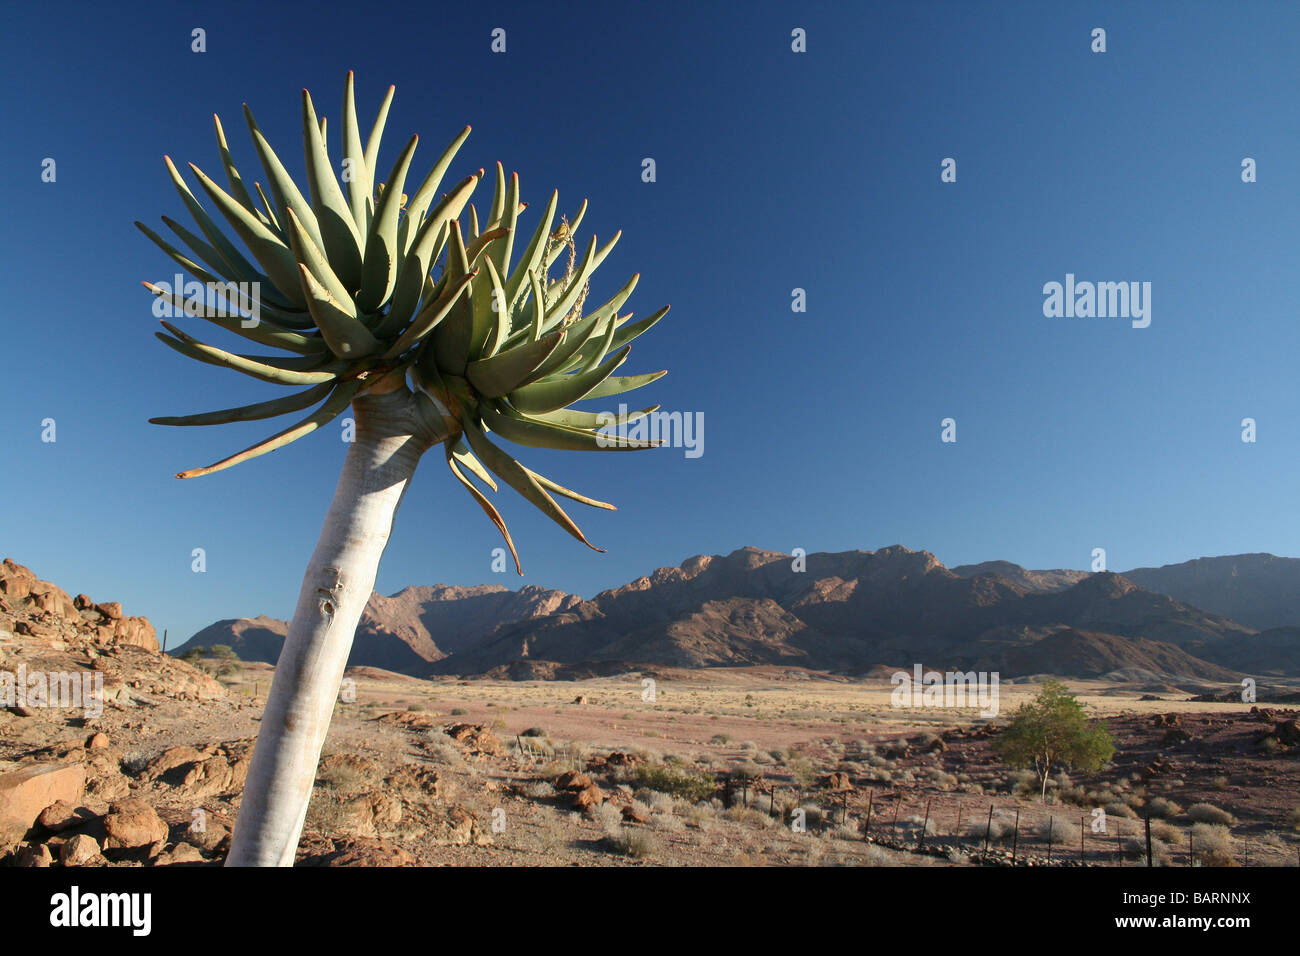 Aloe And Blue Skies With Brandberg Mountain In Distance, Namibia, Africa - Stock Image